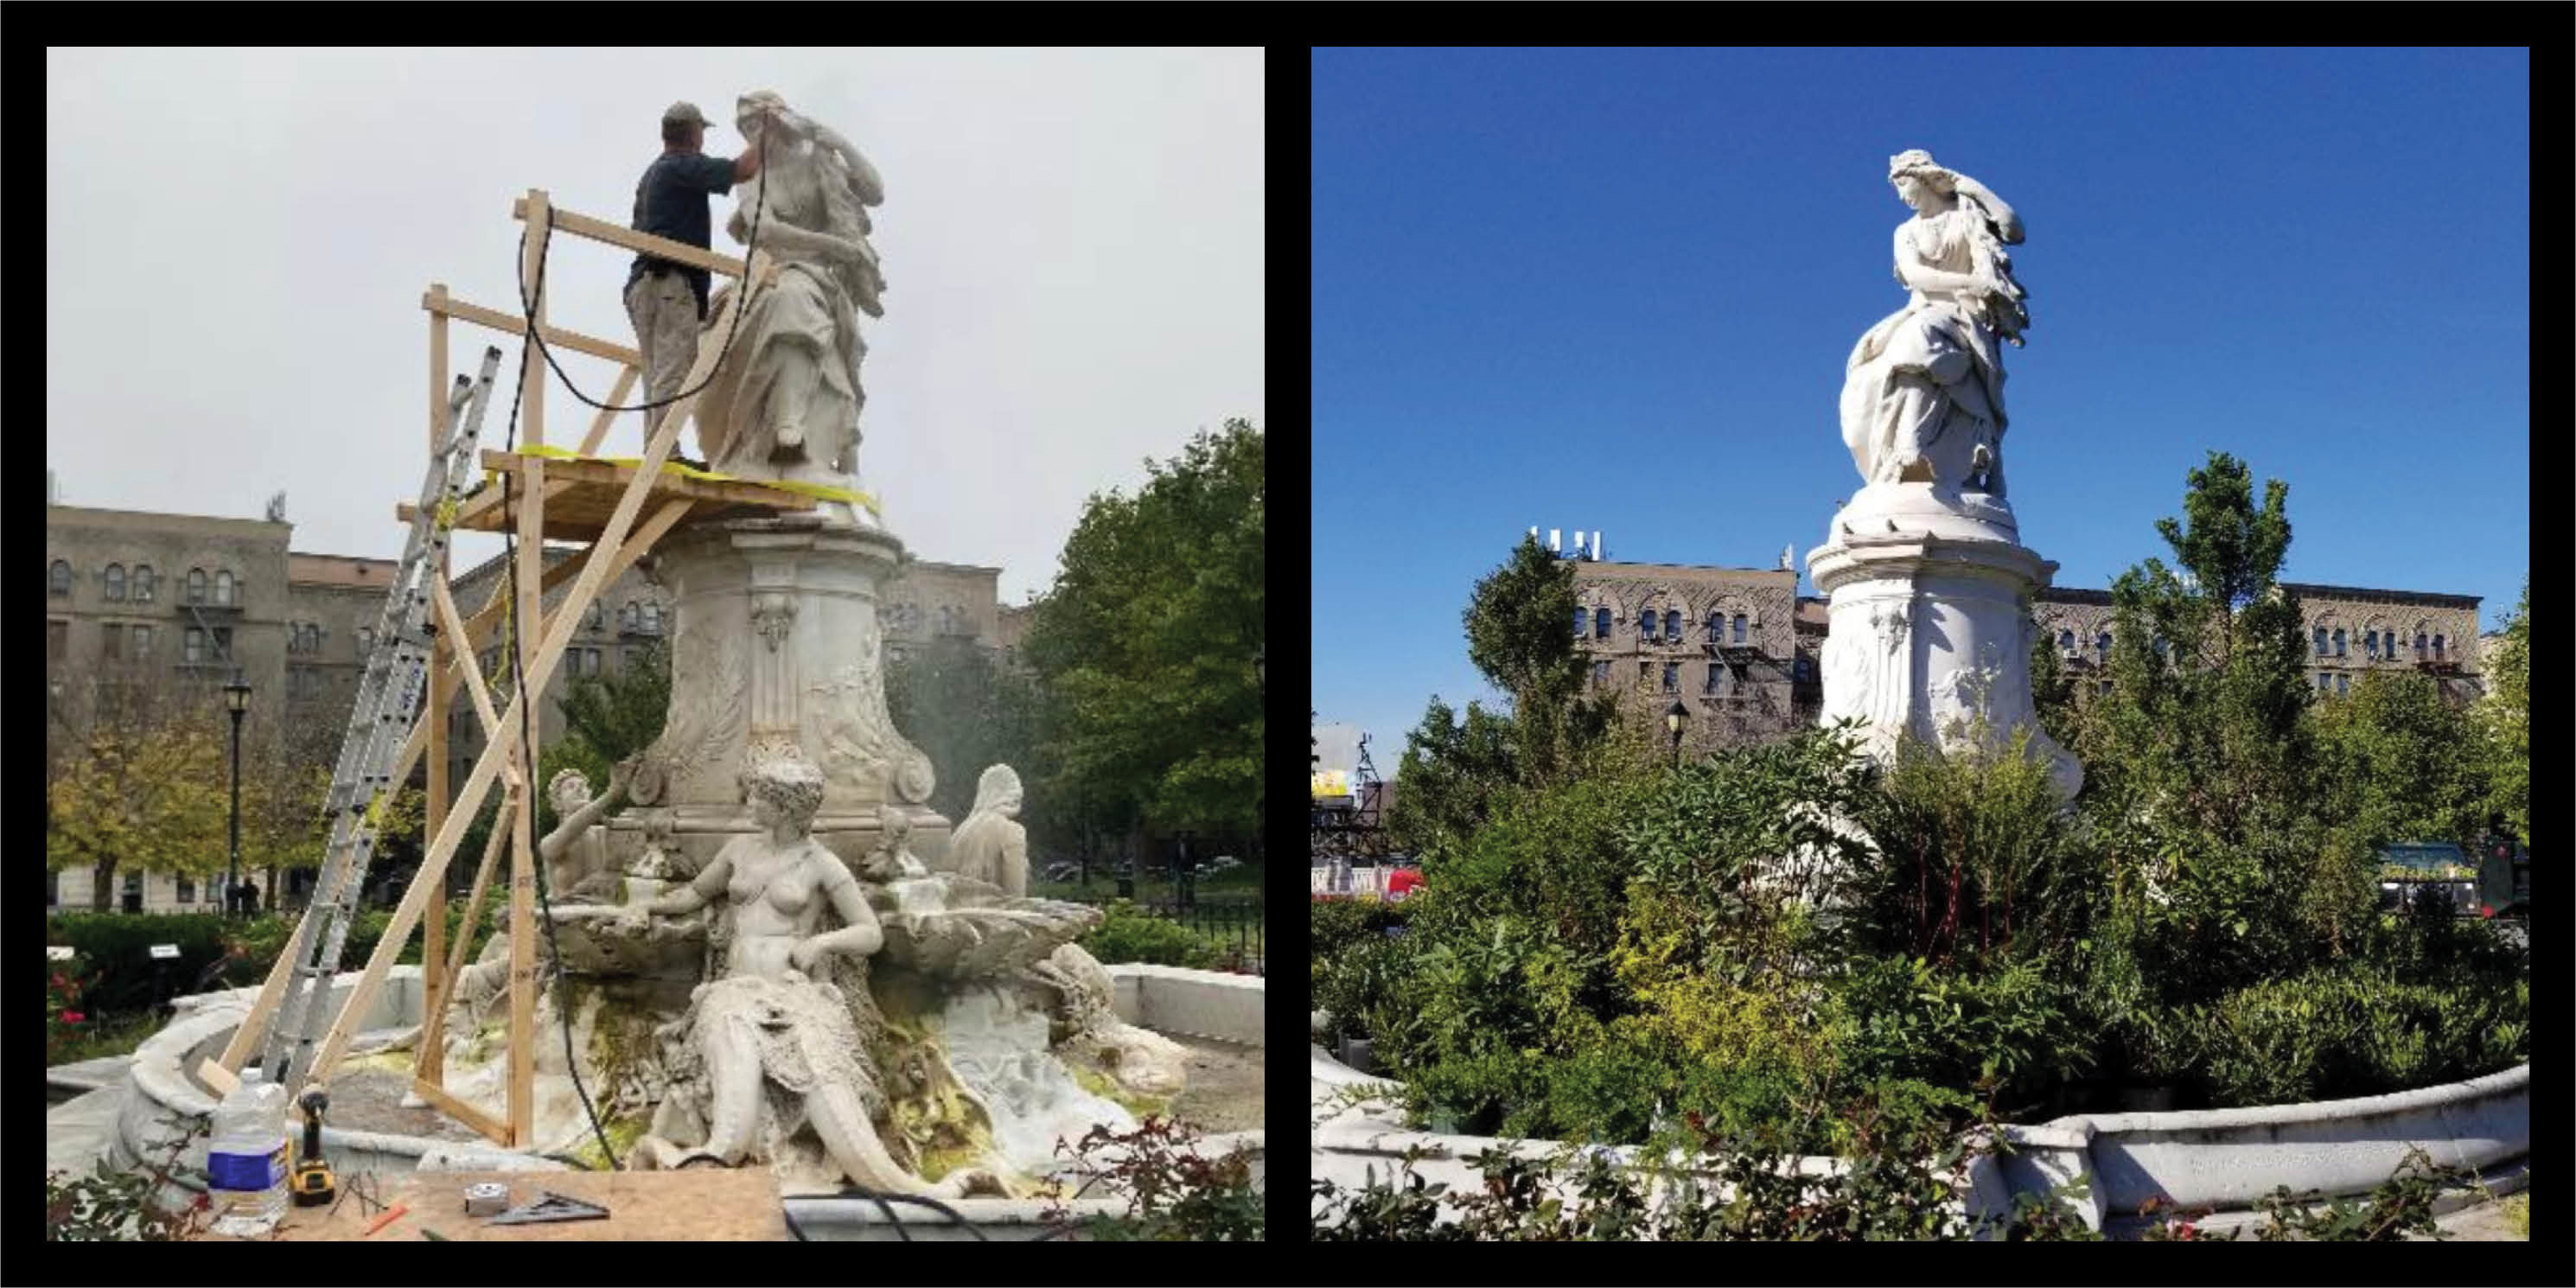 Before and after photos of the Die Lorelei Monument restoration